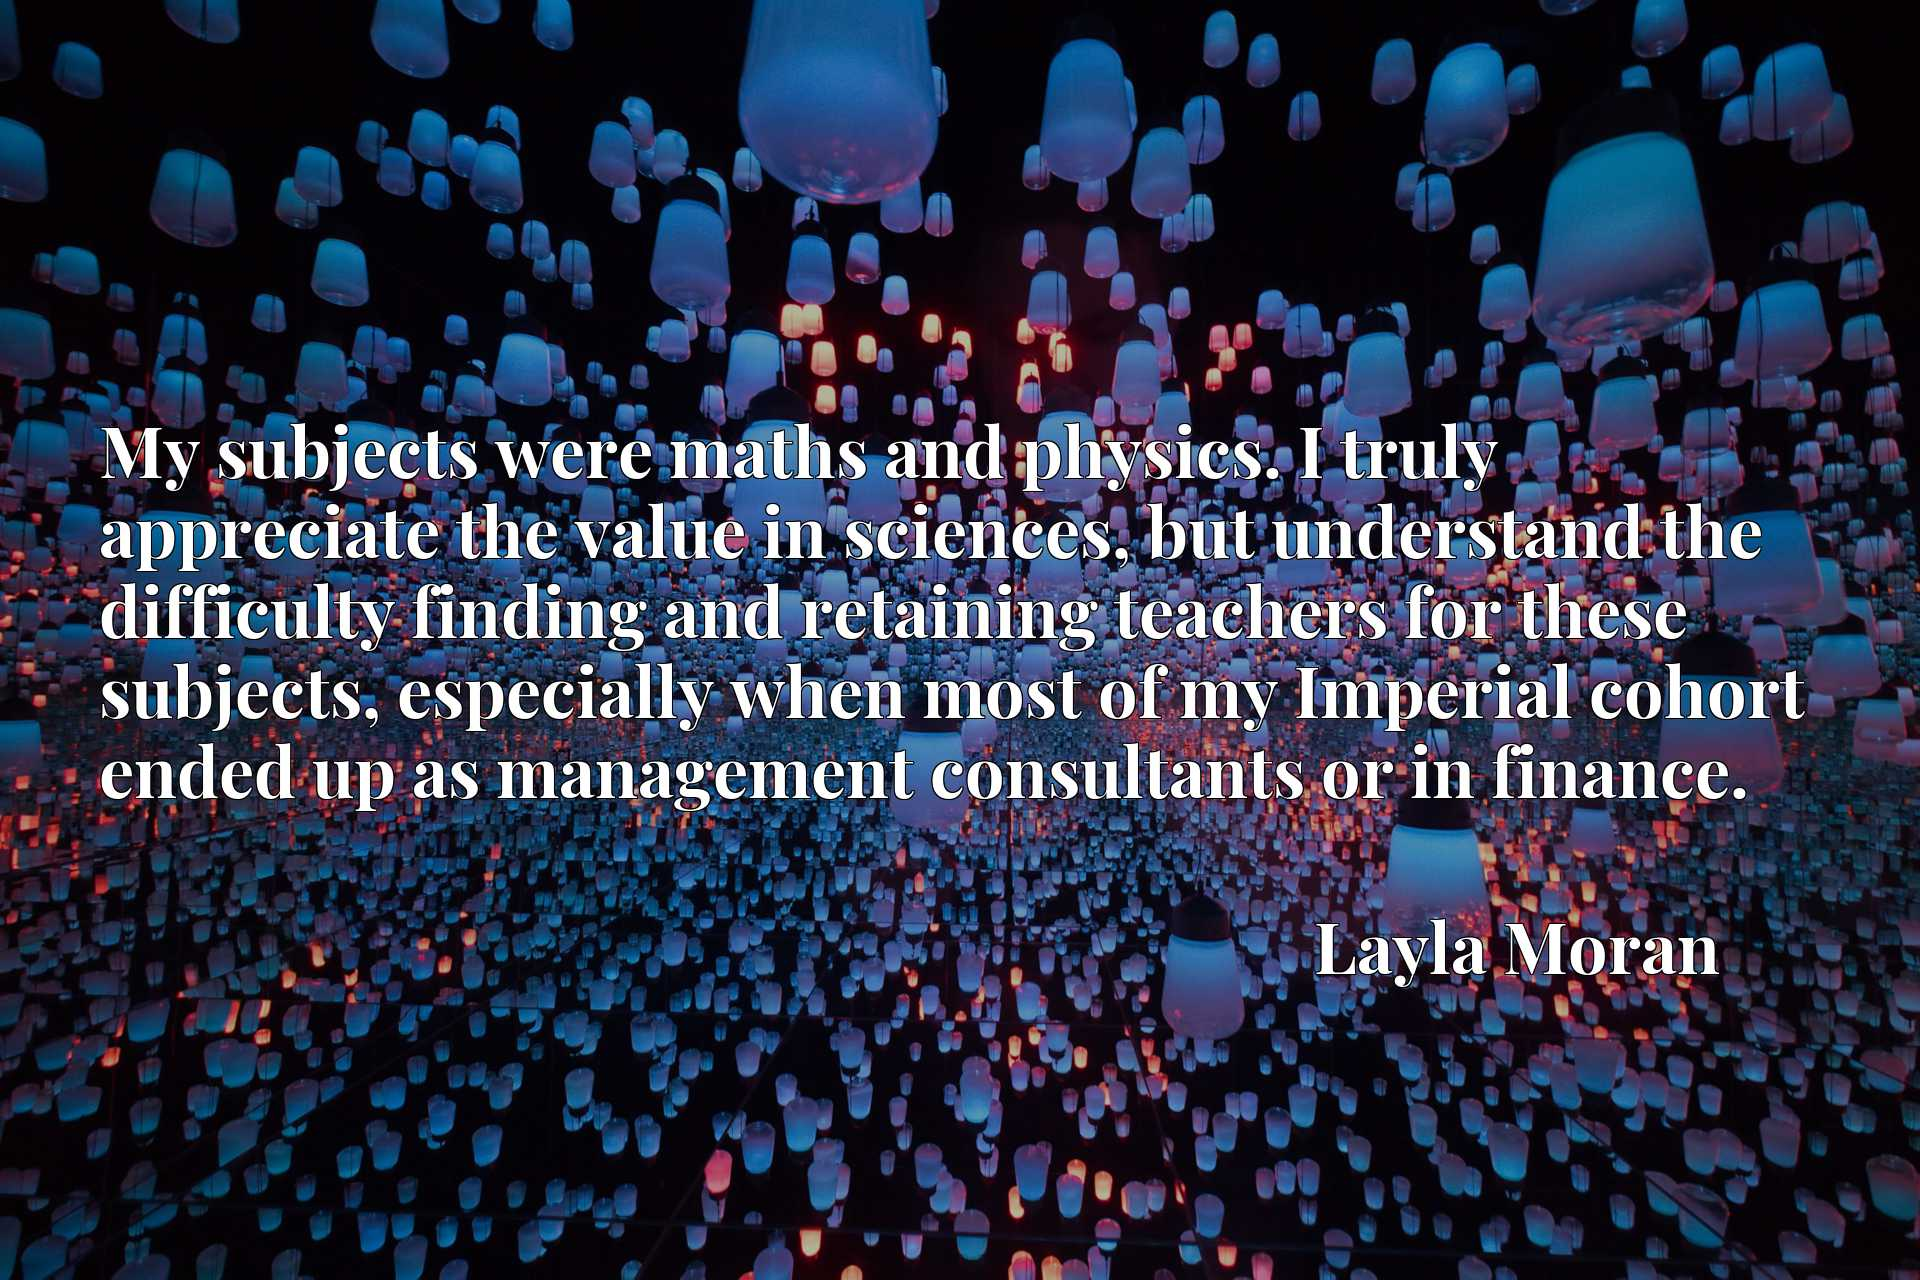 My subjects were maths and physics. I truly appreciate the value in sciences, but understand the difficulty finding and retaining teachers for these subjects, especially when most of my Imperial cohort ended up as management consultants or in finance.